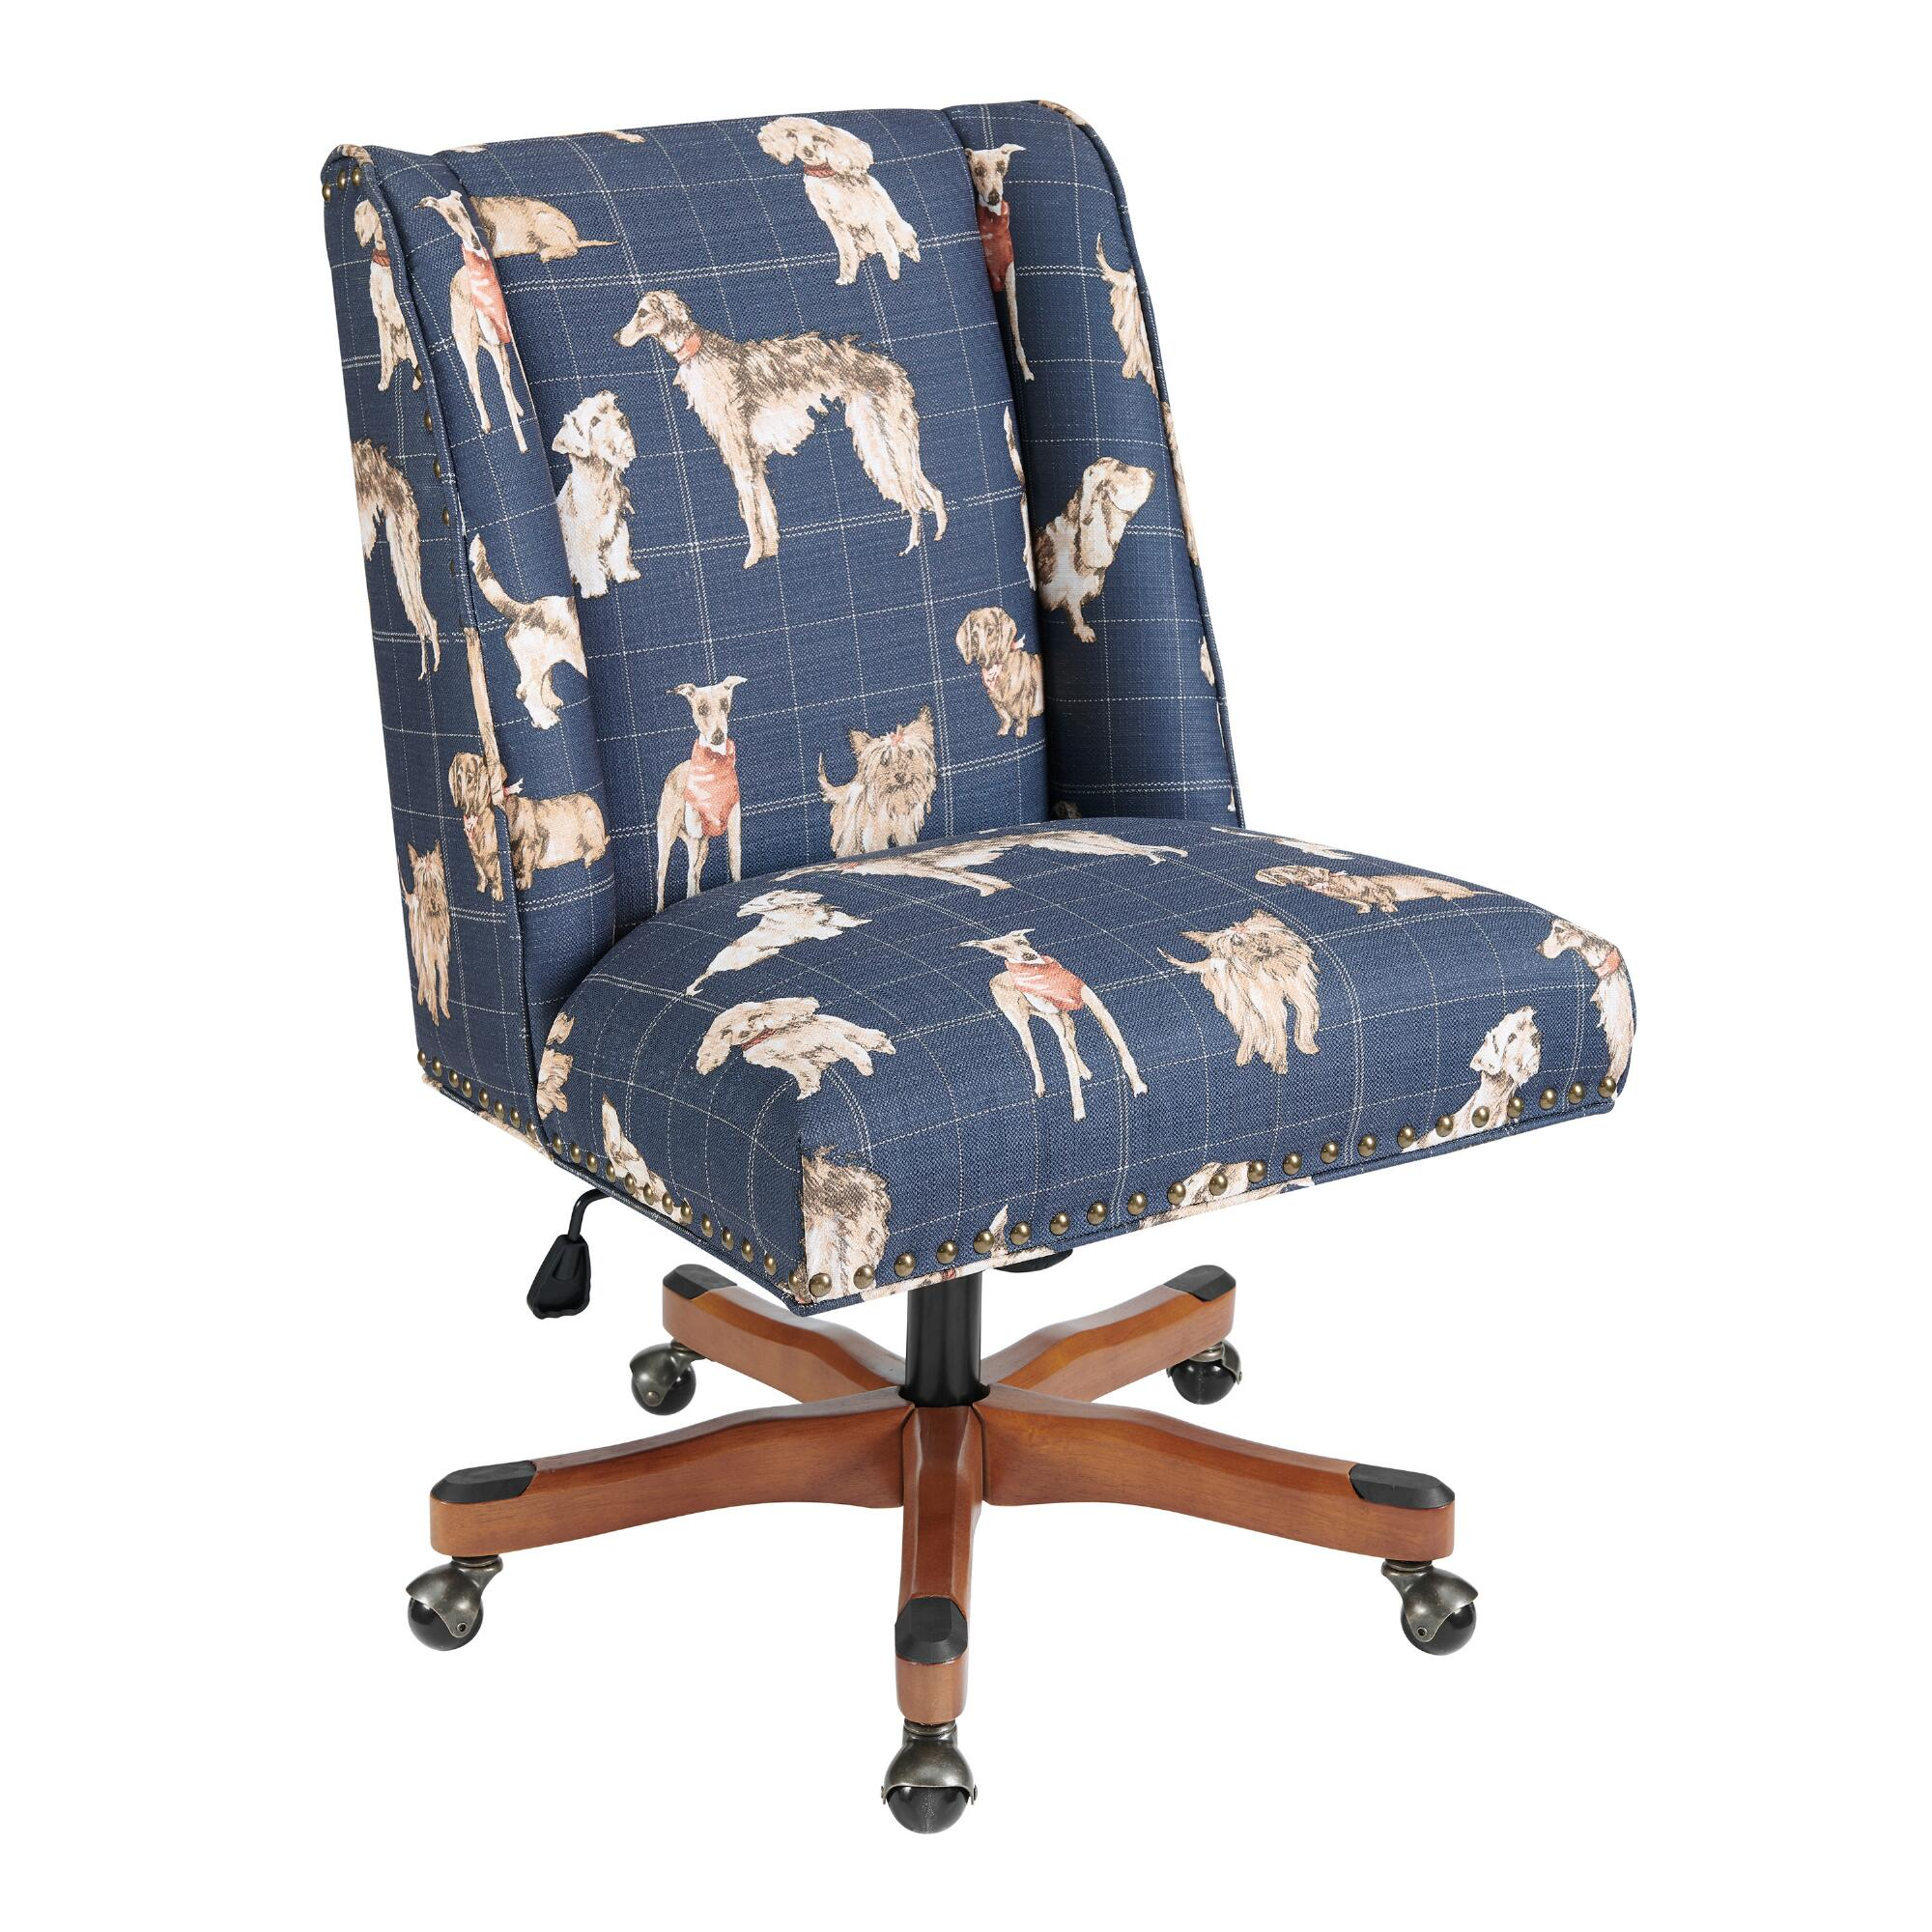 Decals For Baby Room, Dog Print Ava Upholstered Office Chair World Market